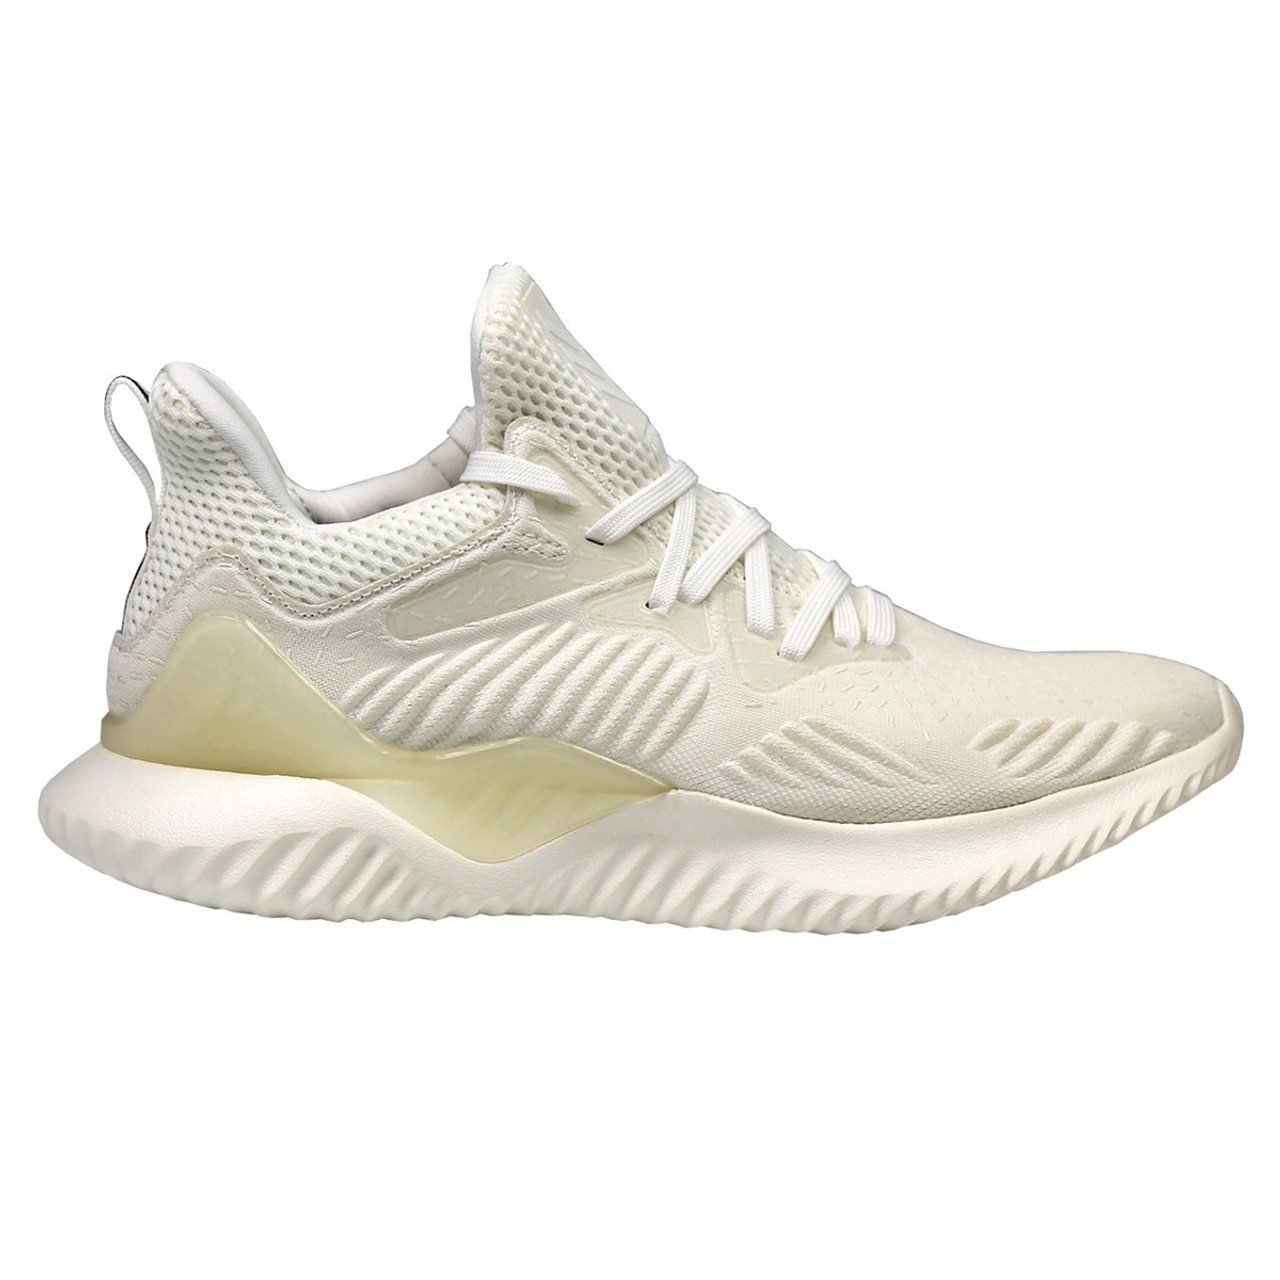 39e57ad35f7cc Adidas Alphabounce Beyond Women s Sneakers DB1119